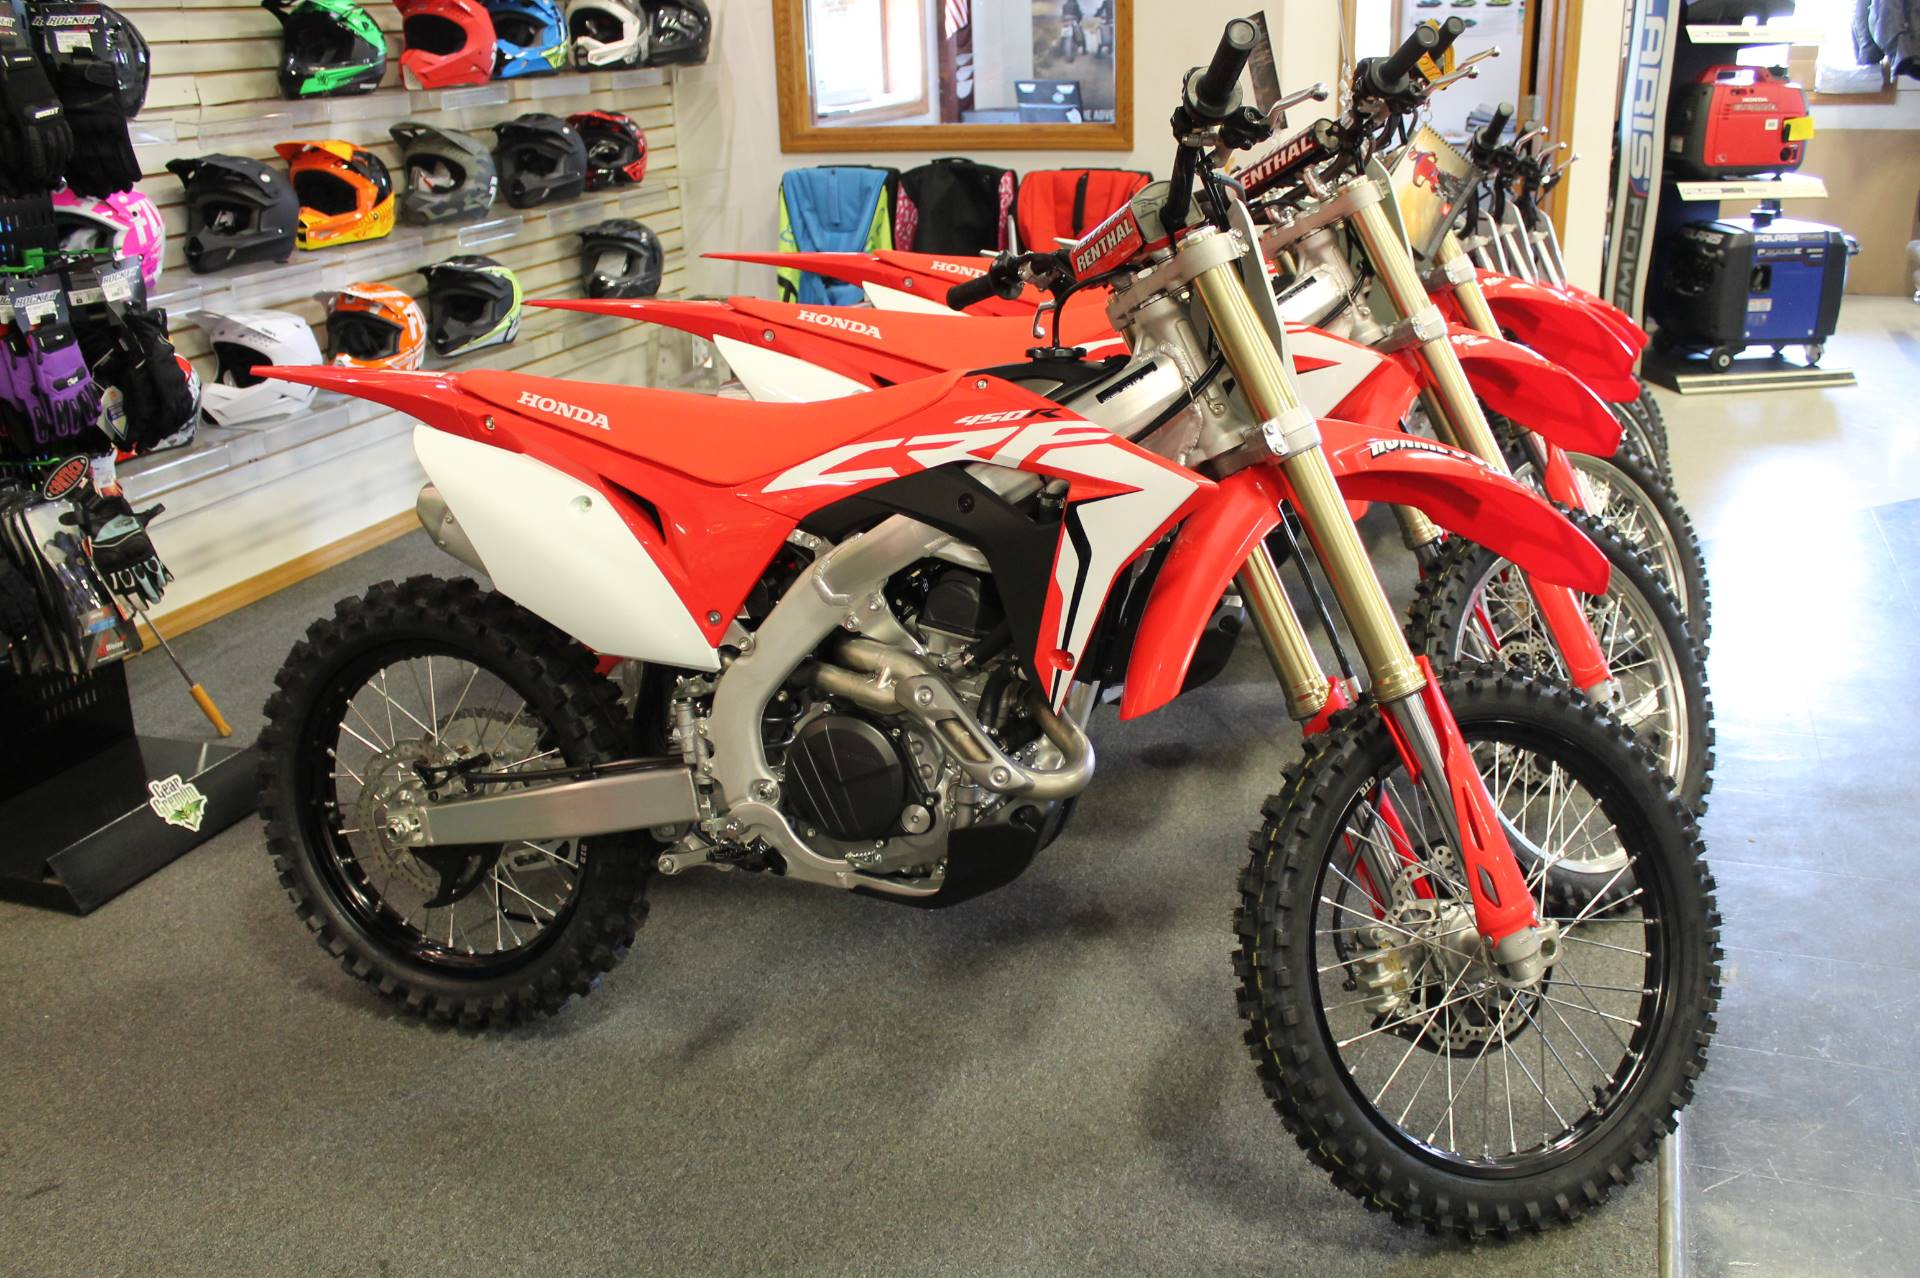 New 2019 Honda CRF450R Motorcycles in Adams, MA | Stock